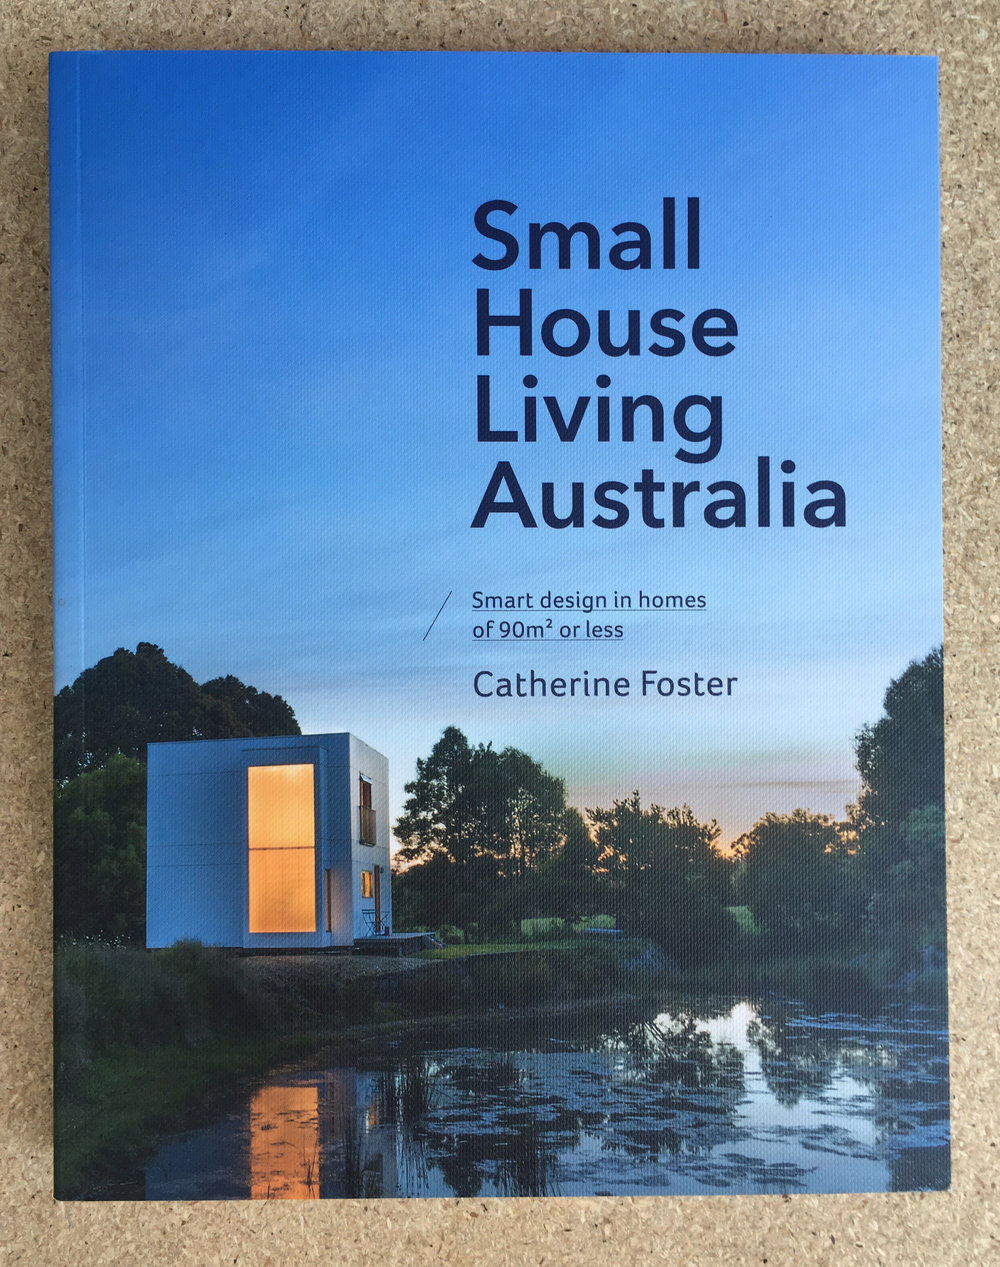 Small House Living Australia Copper House Title.JPG